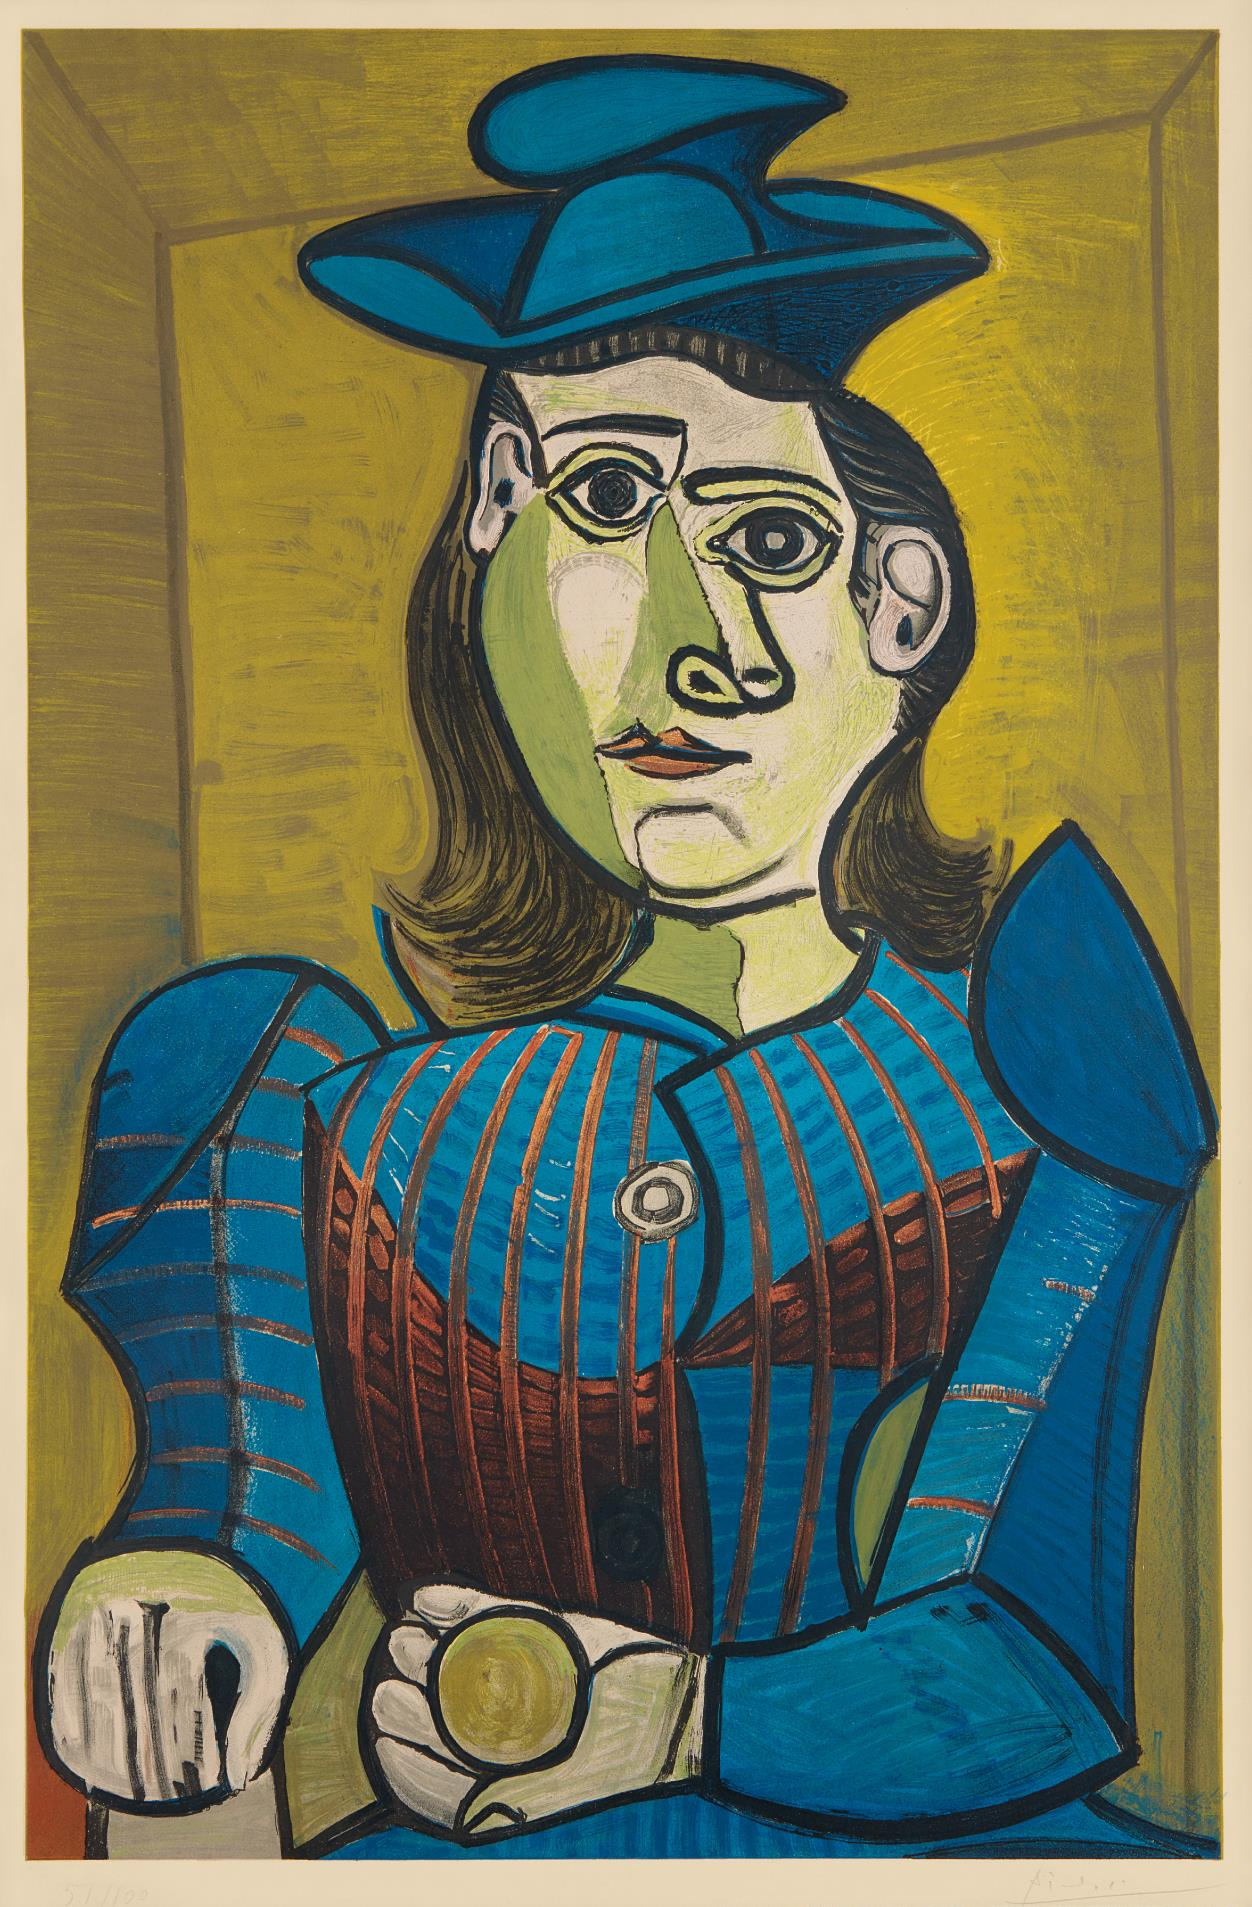 After Pablo Picasso - Dora Maar (Femme Assise) (Dora Maar - Seated Woman)-1955